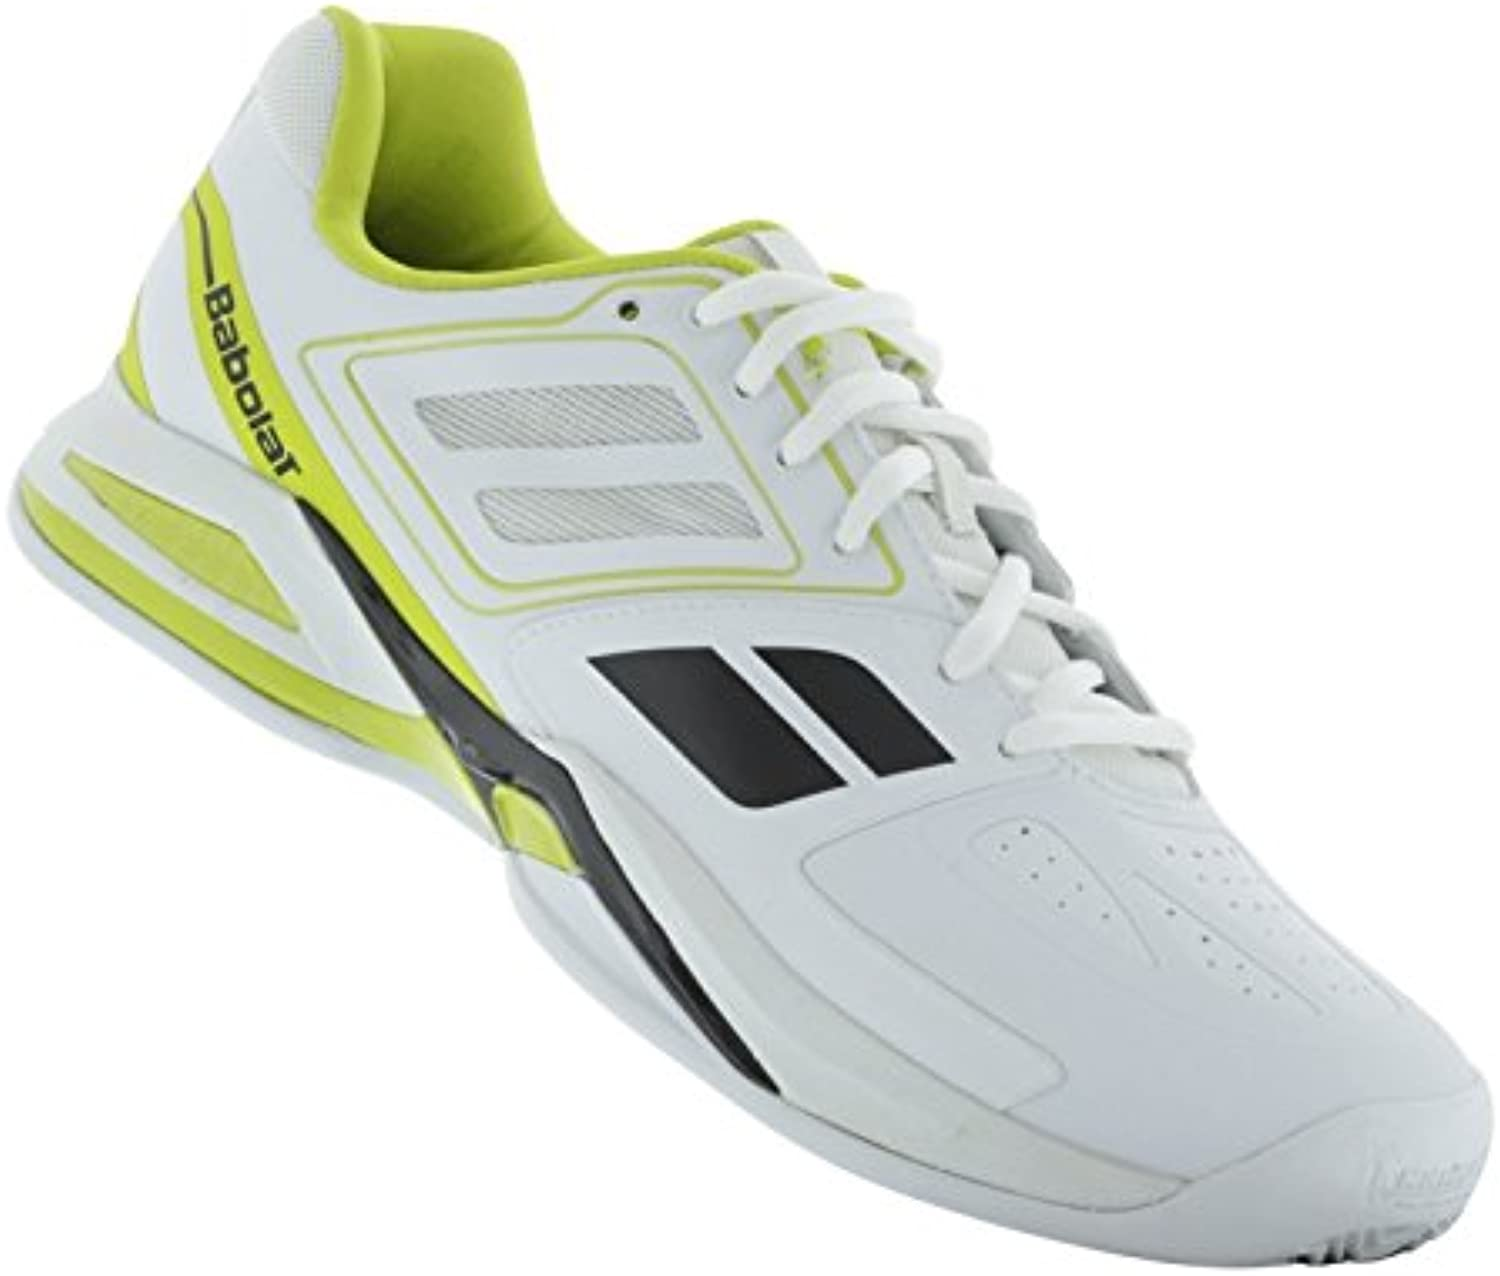 Babolat ProPulse squadra BPM Clay Men bianca light verde nero, Dimensione 46